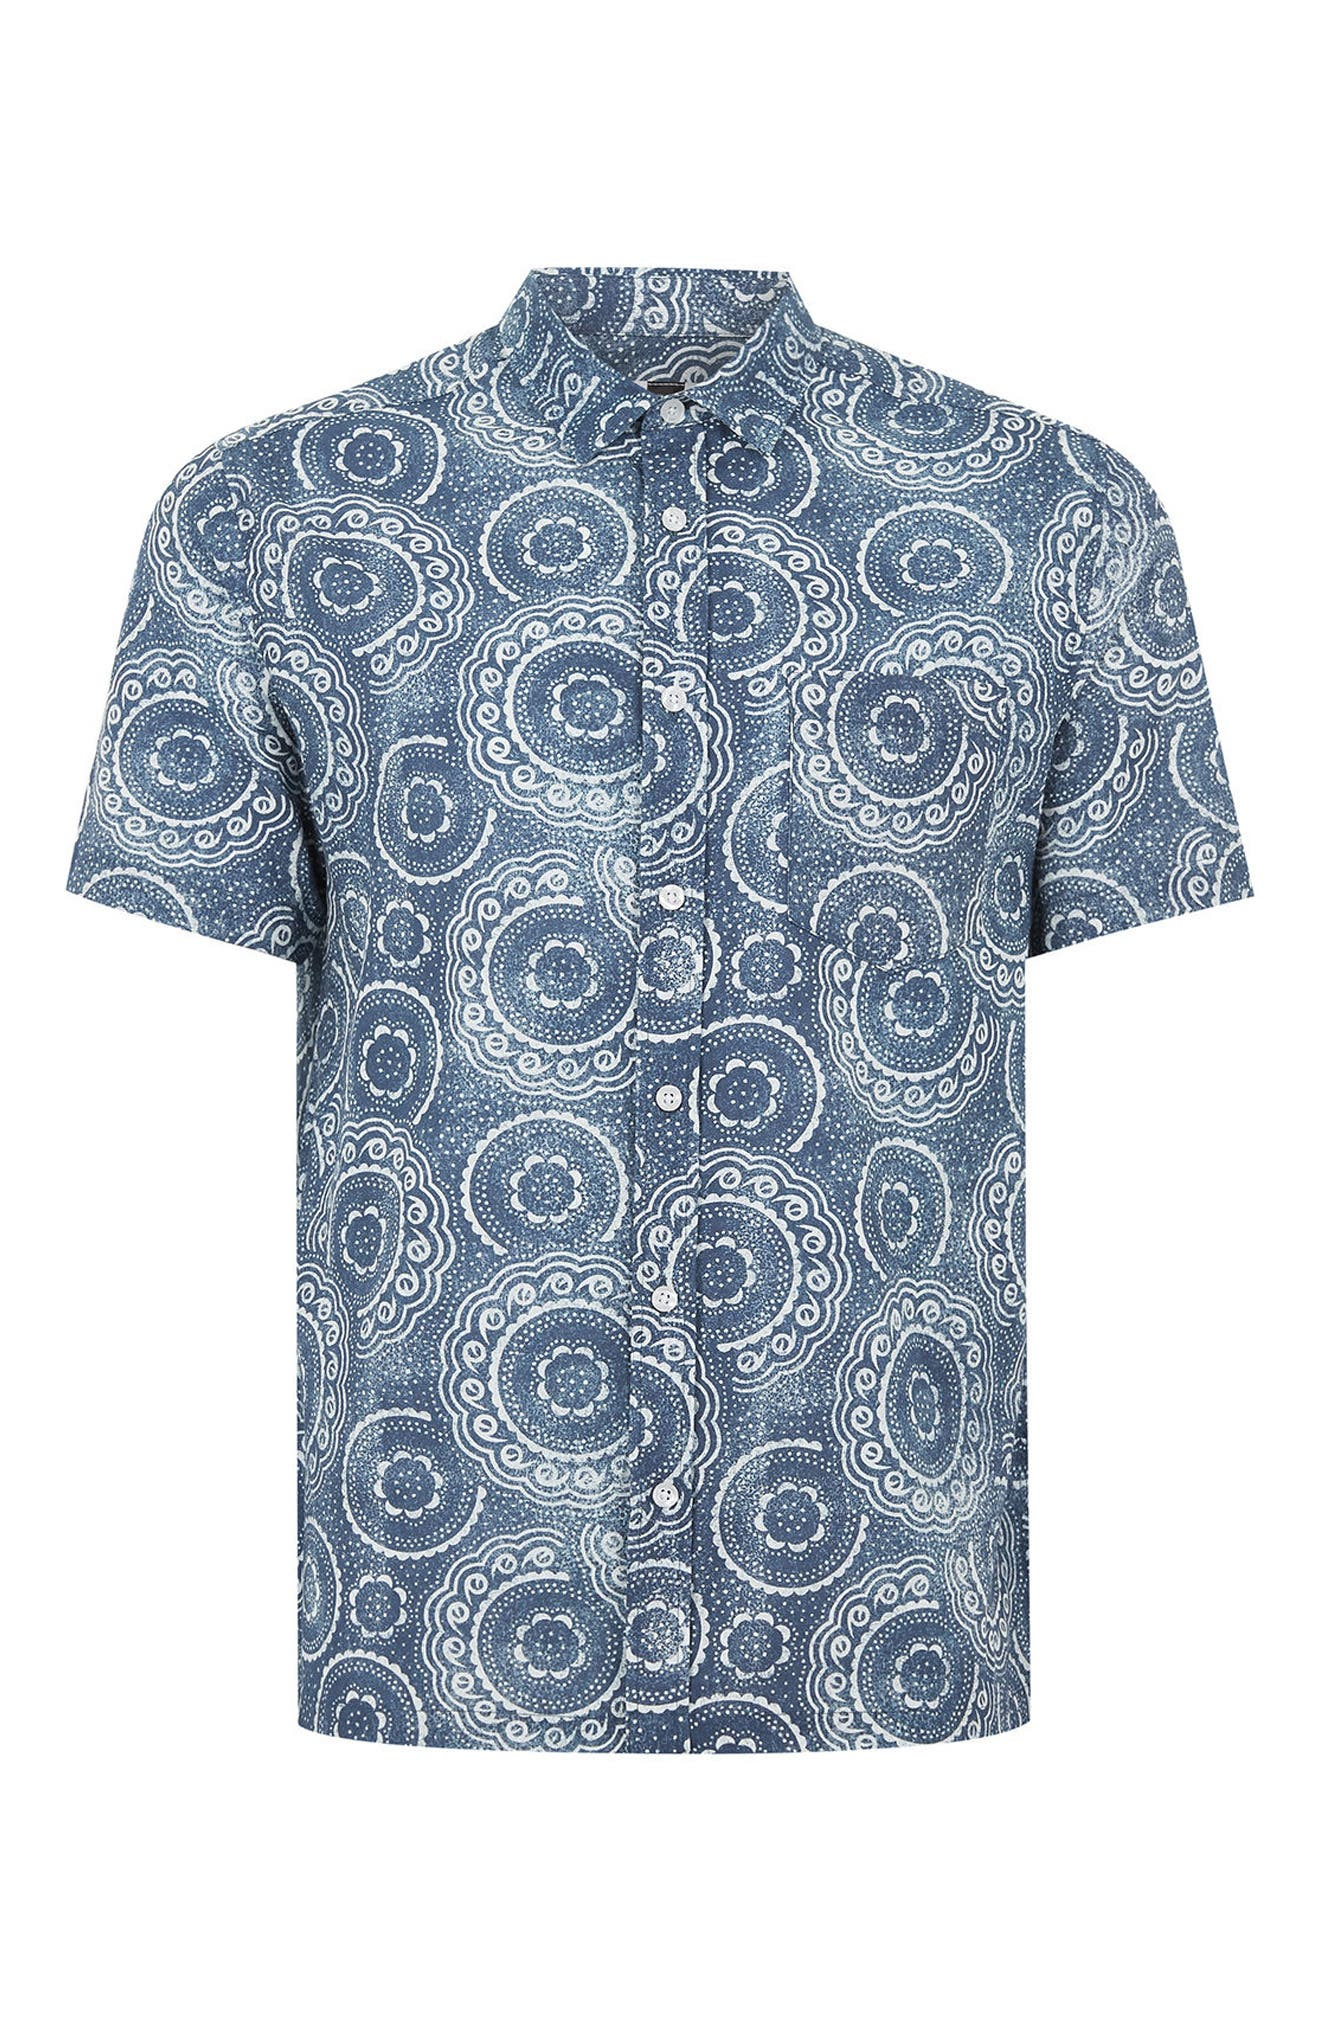 Trim Fit Circle Print Woven Shirt,                             Alternate thumbnail 5, color,                             Blue Multi